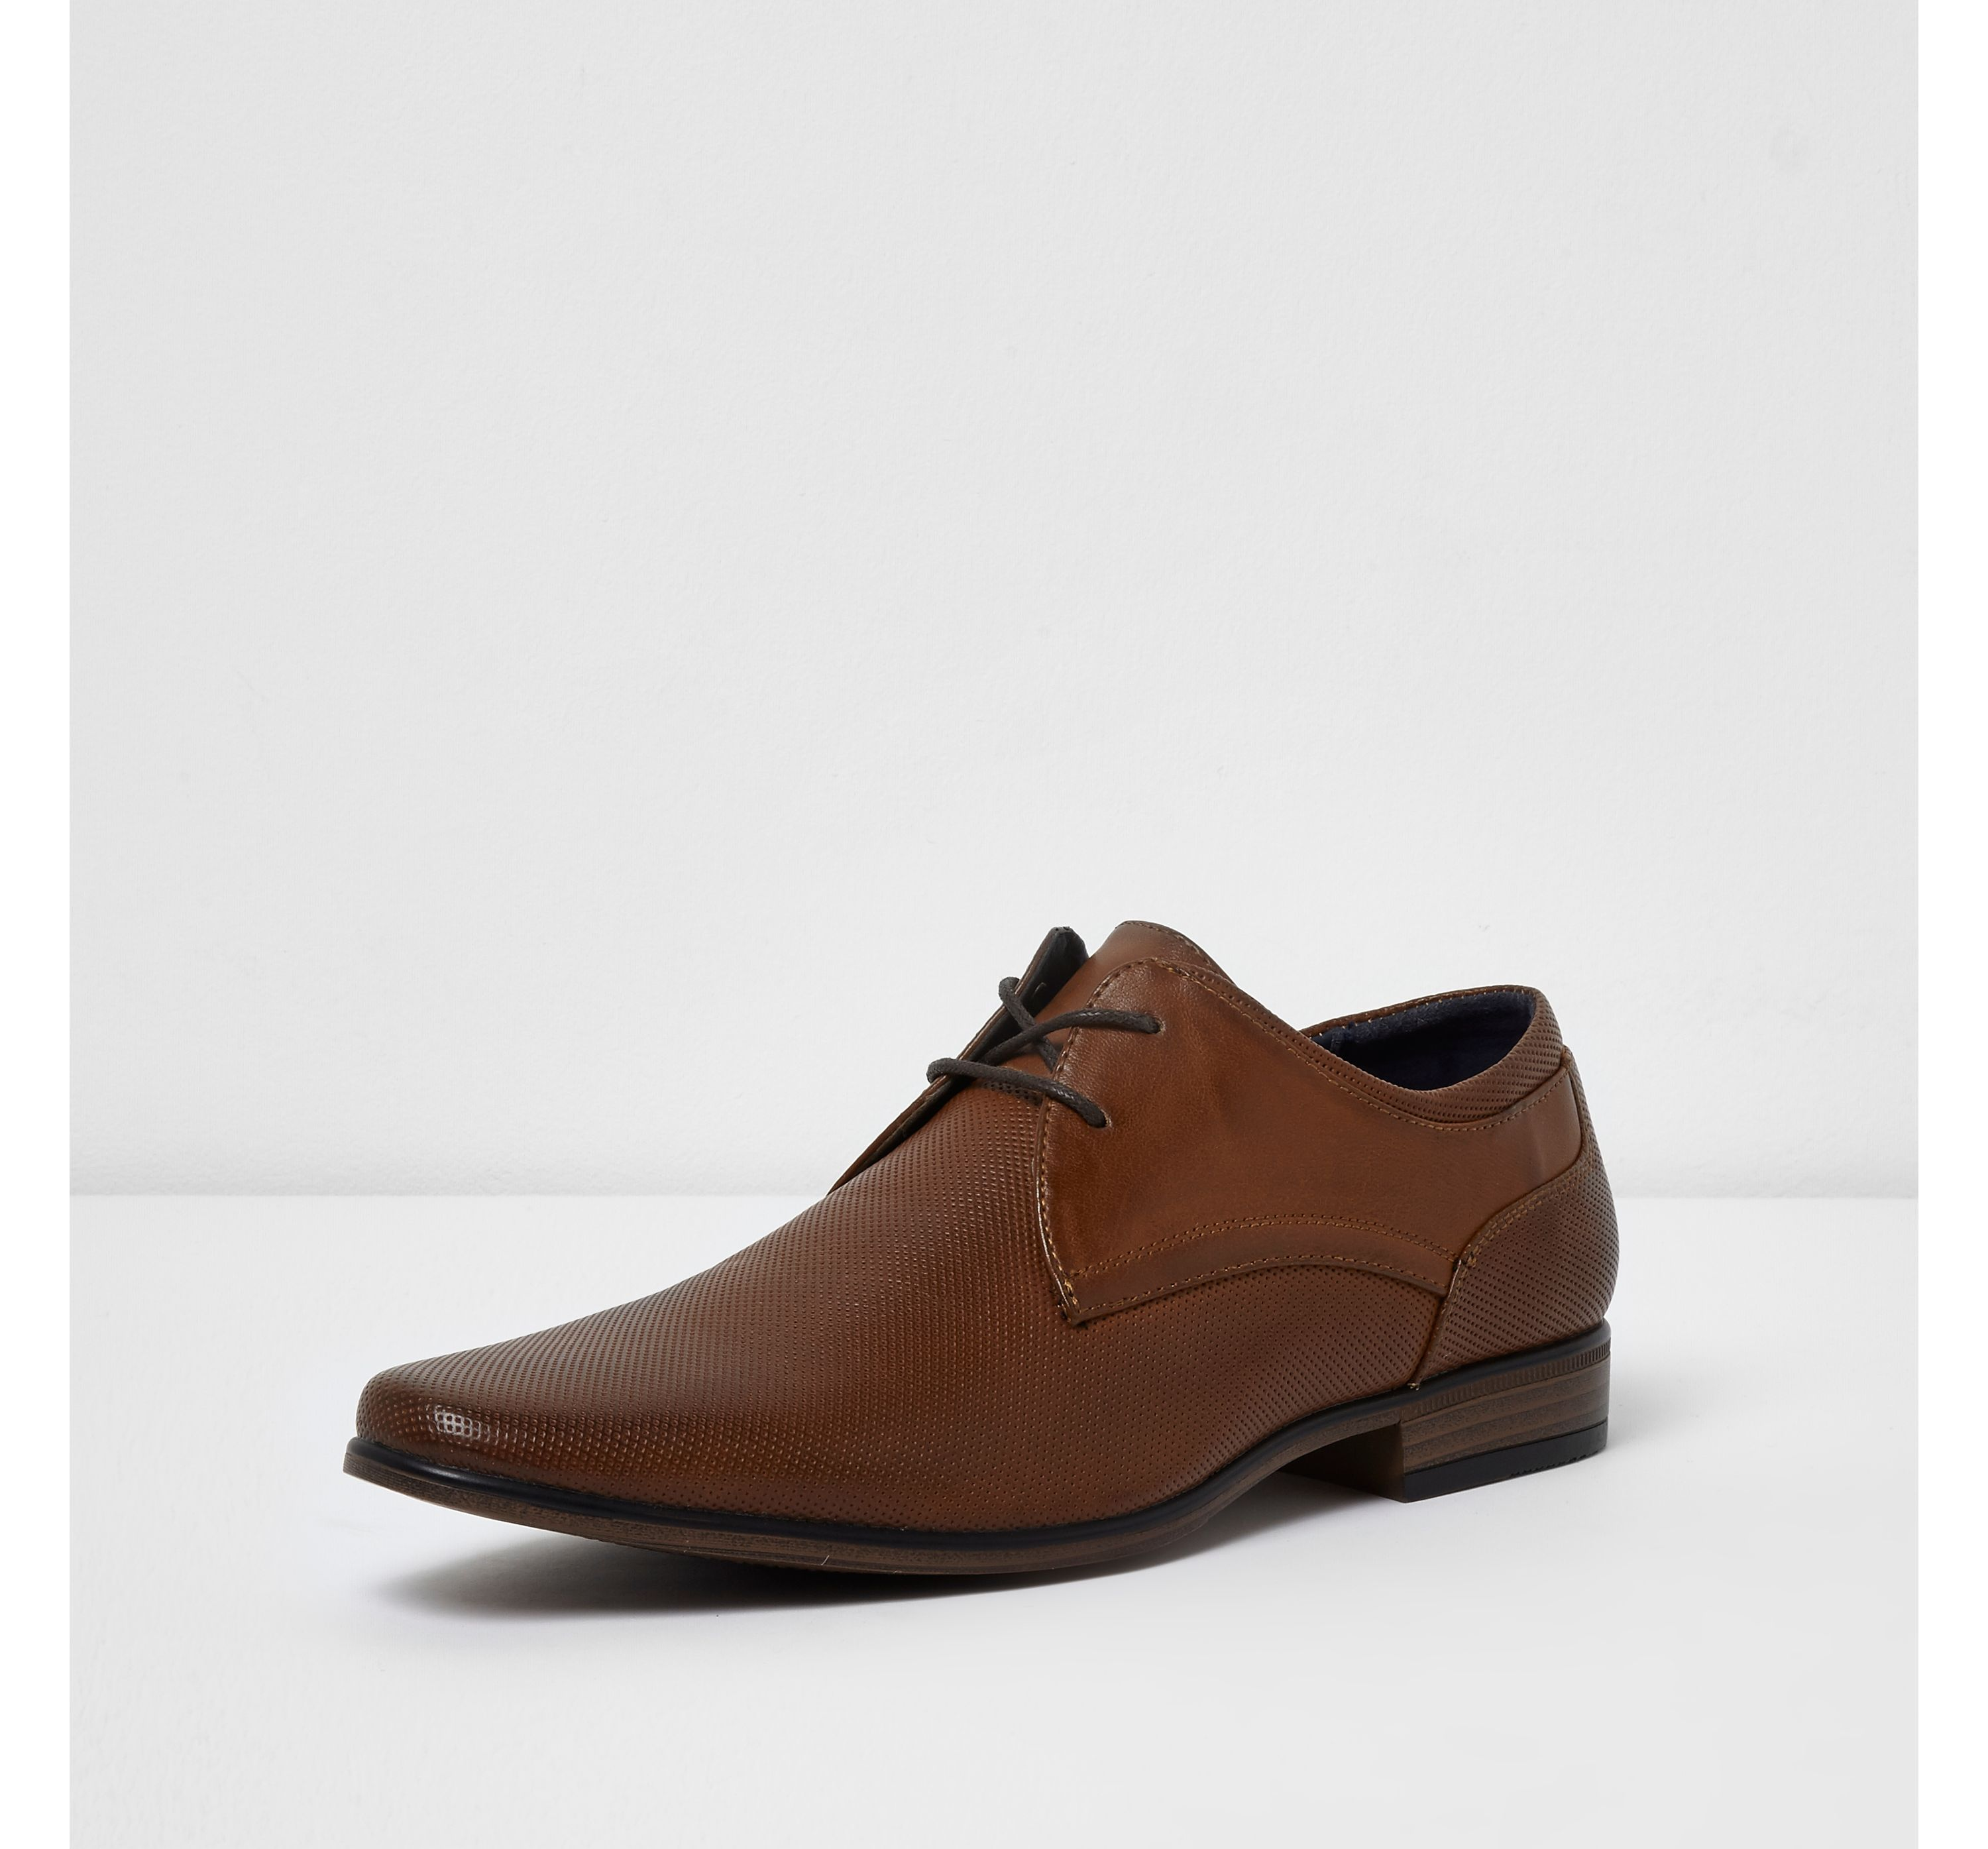 River Island Mens Tan perforated formal shoes